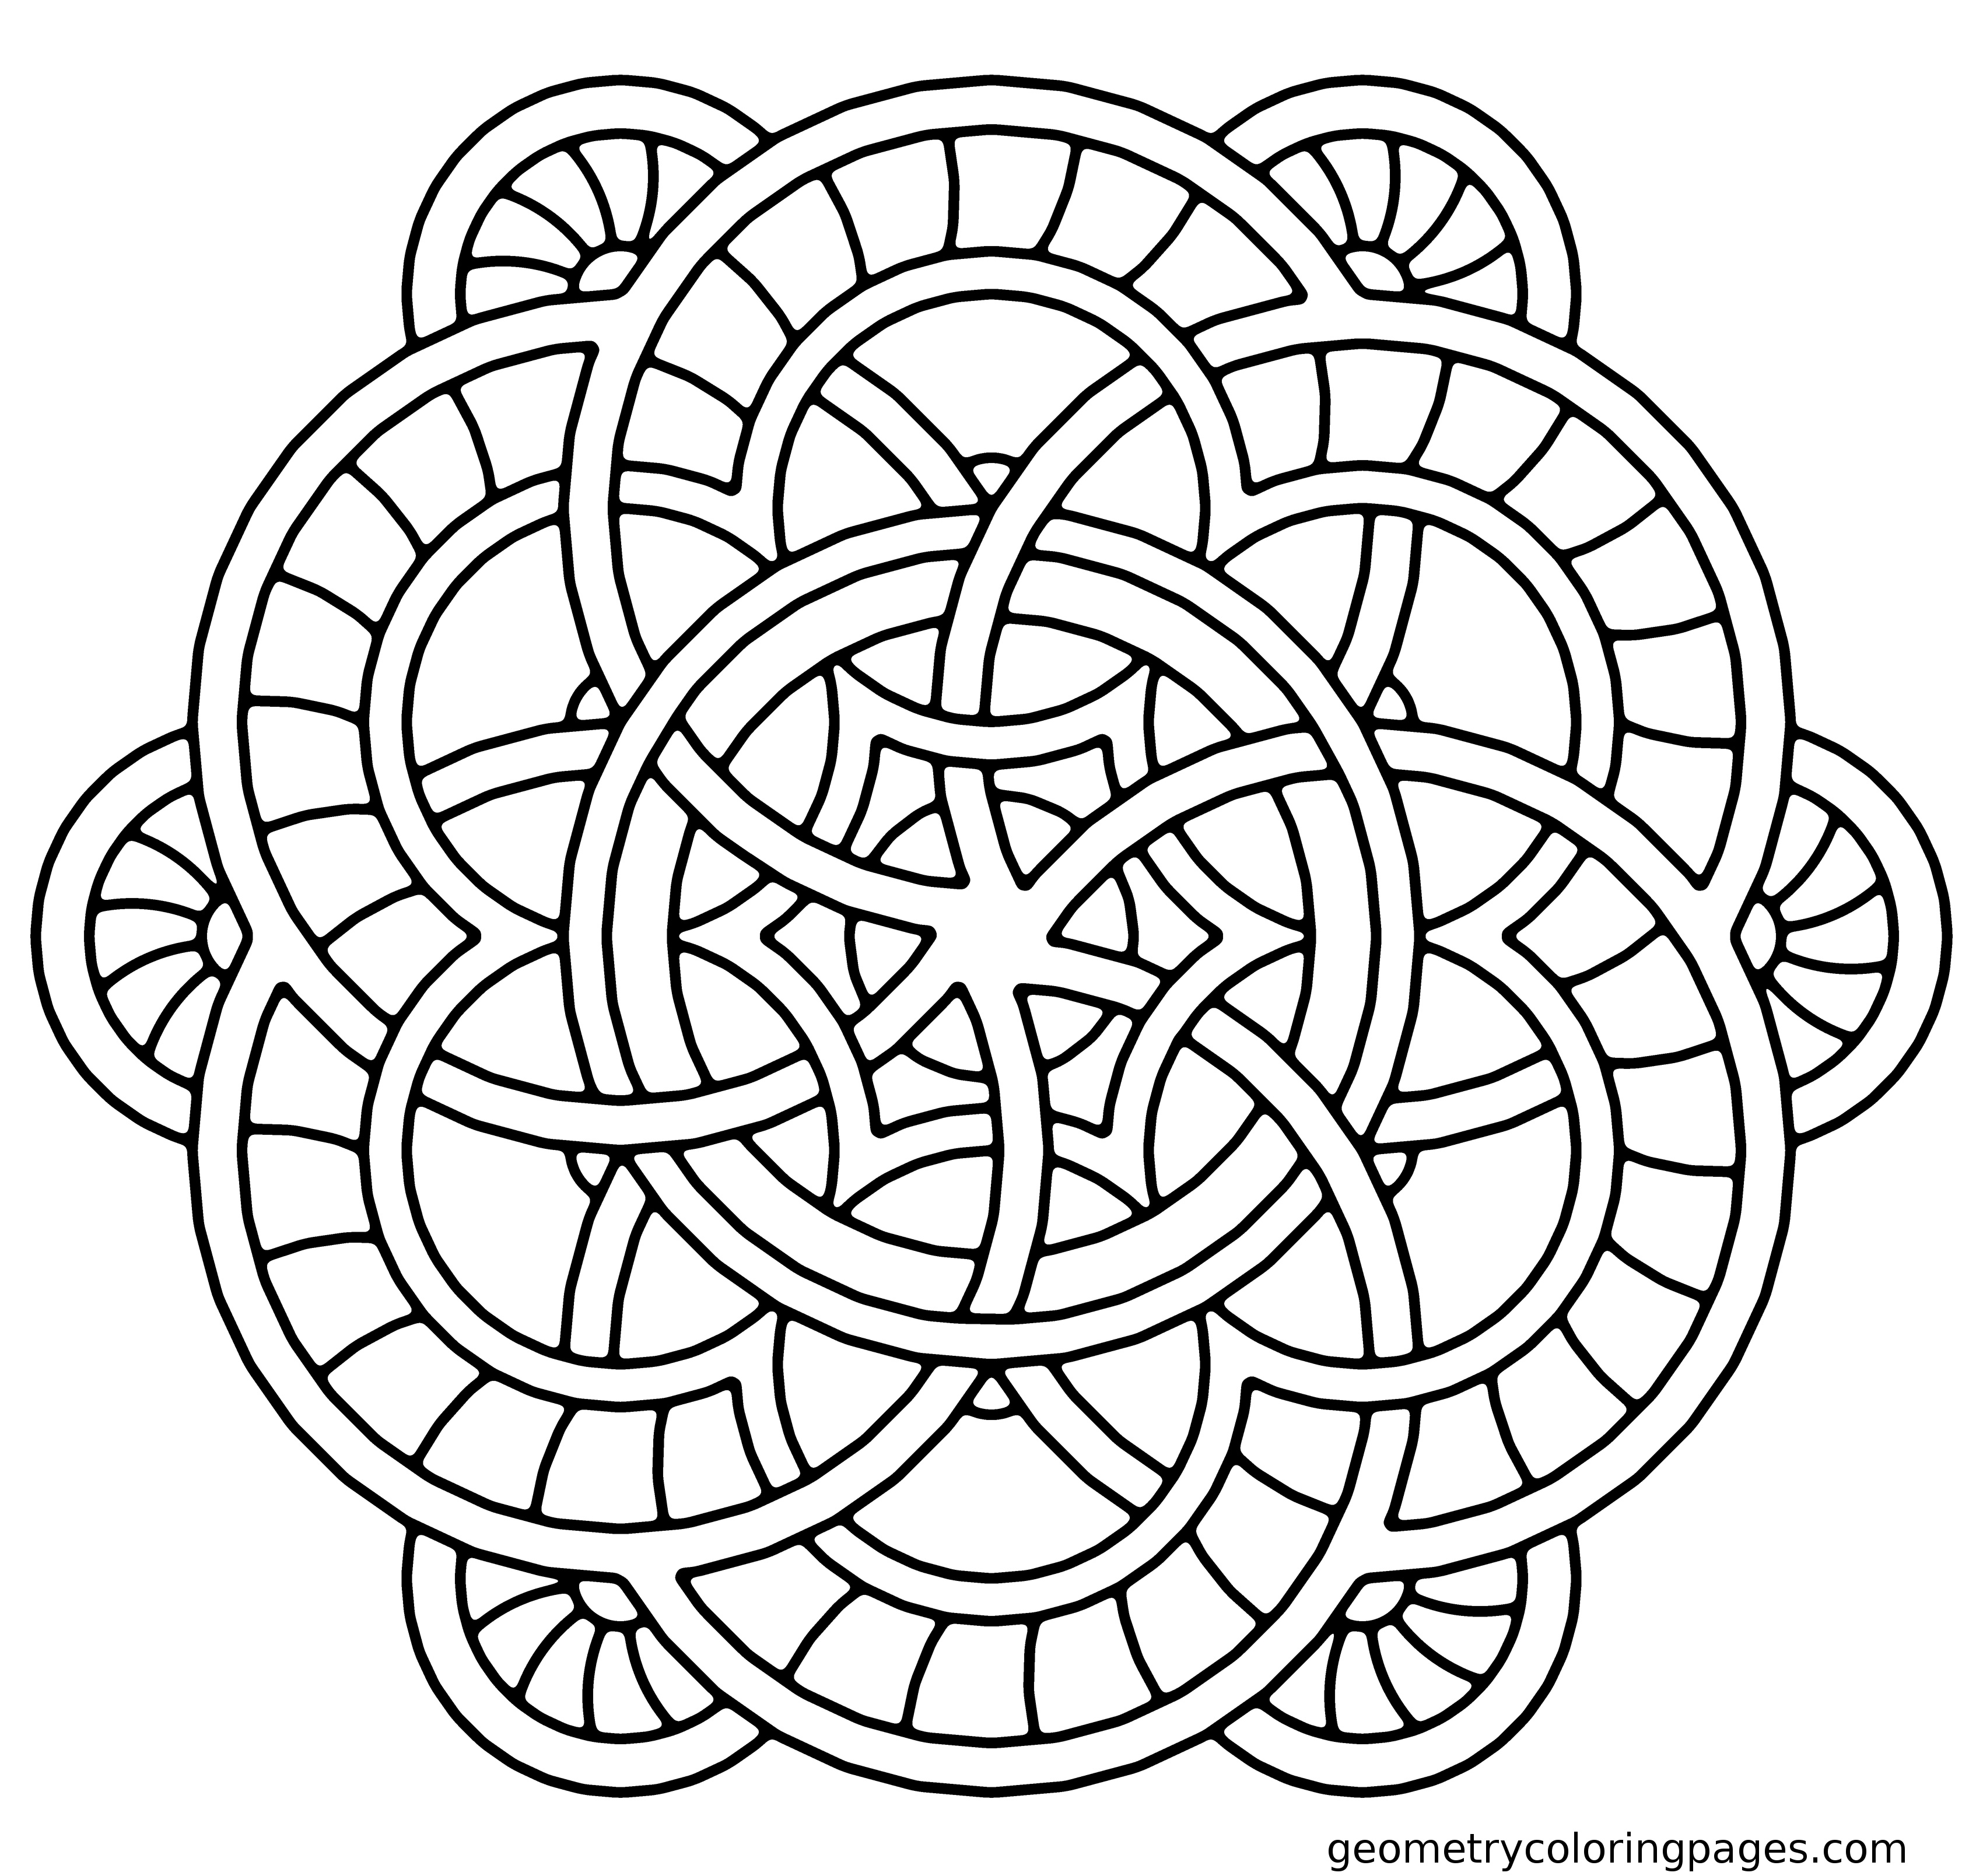 Coloring Pages Mandala Simple